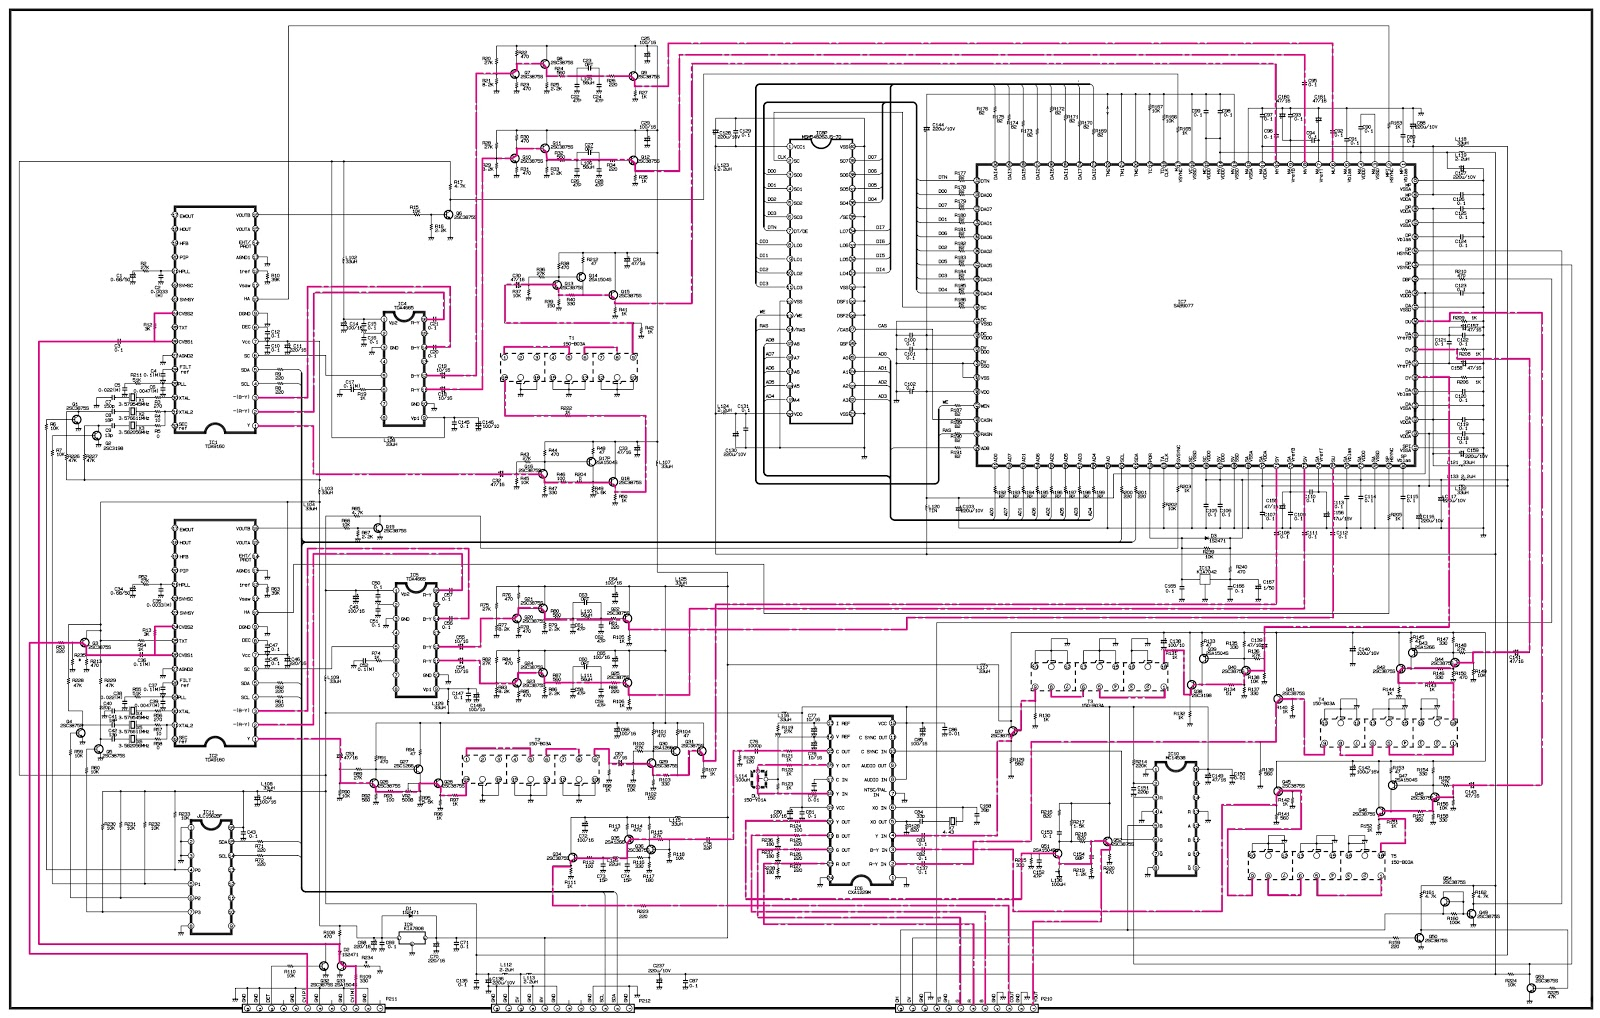 WP32A30 LG 32 inch CRT TV Circuit Diagram Schematic